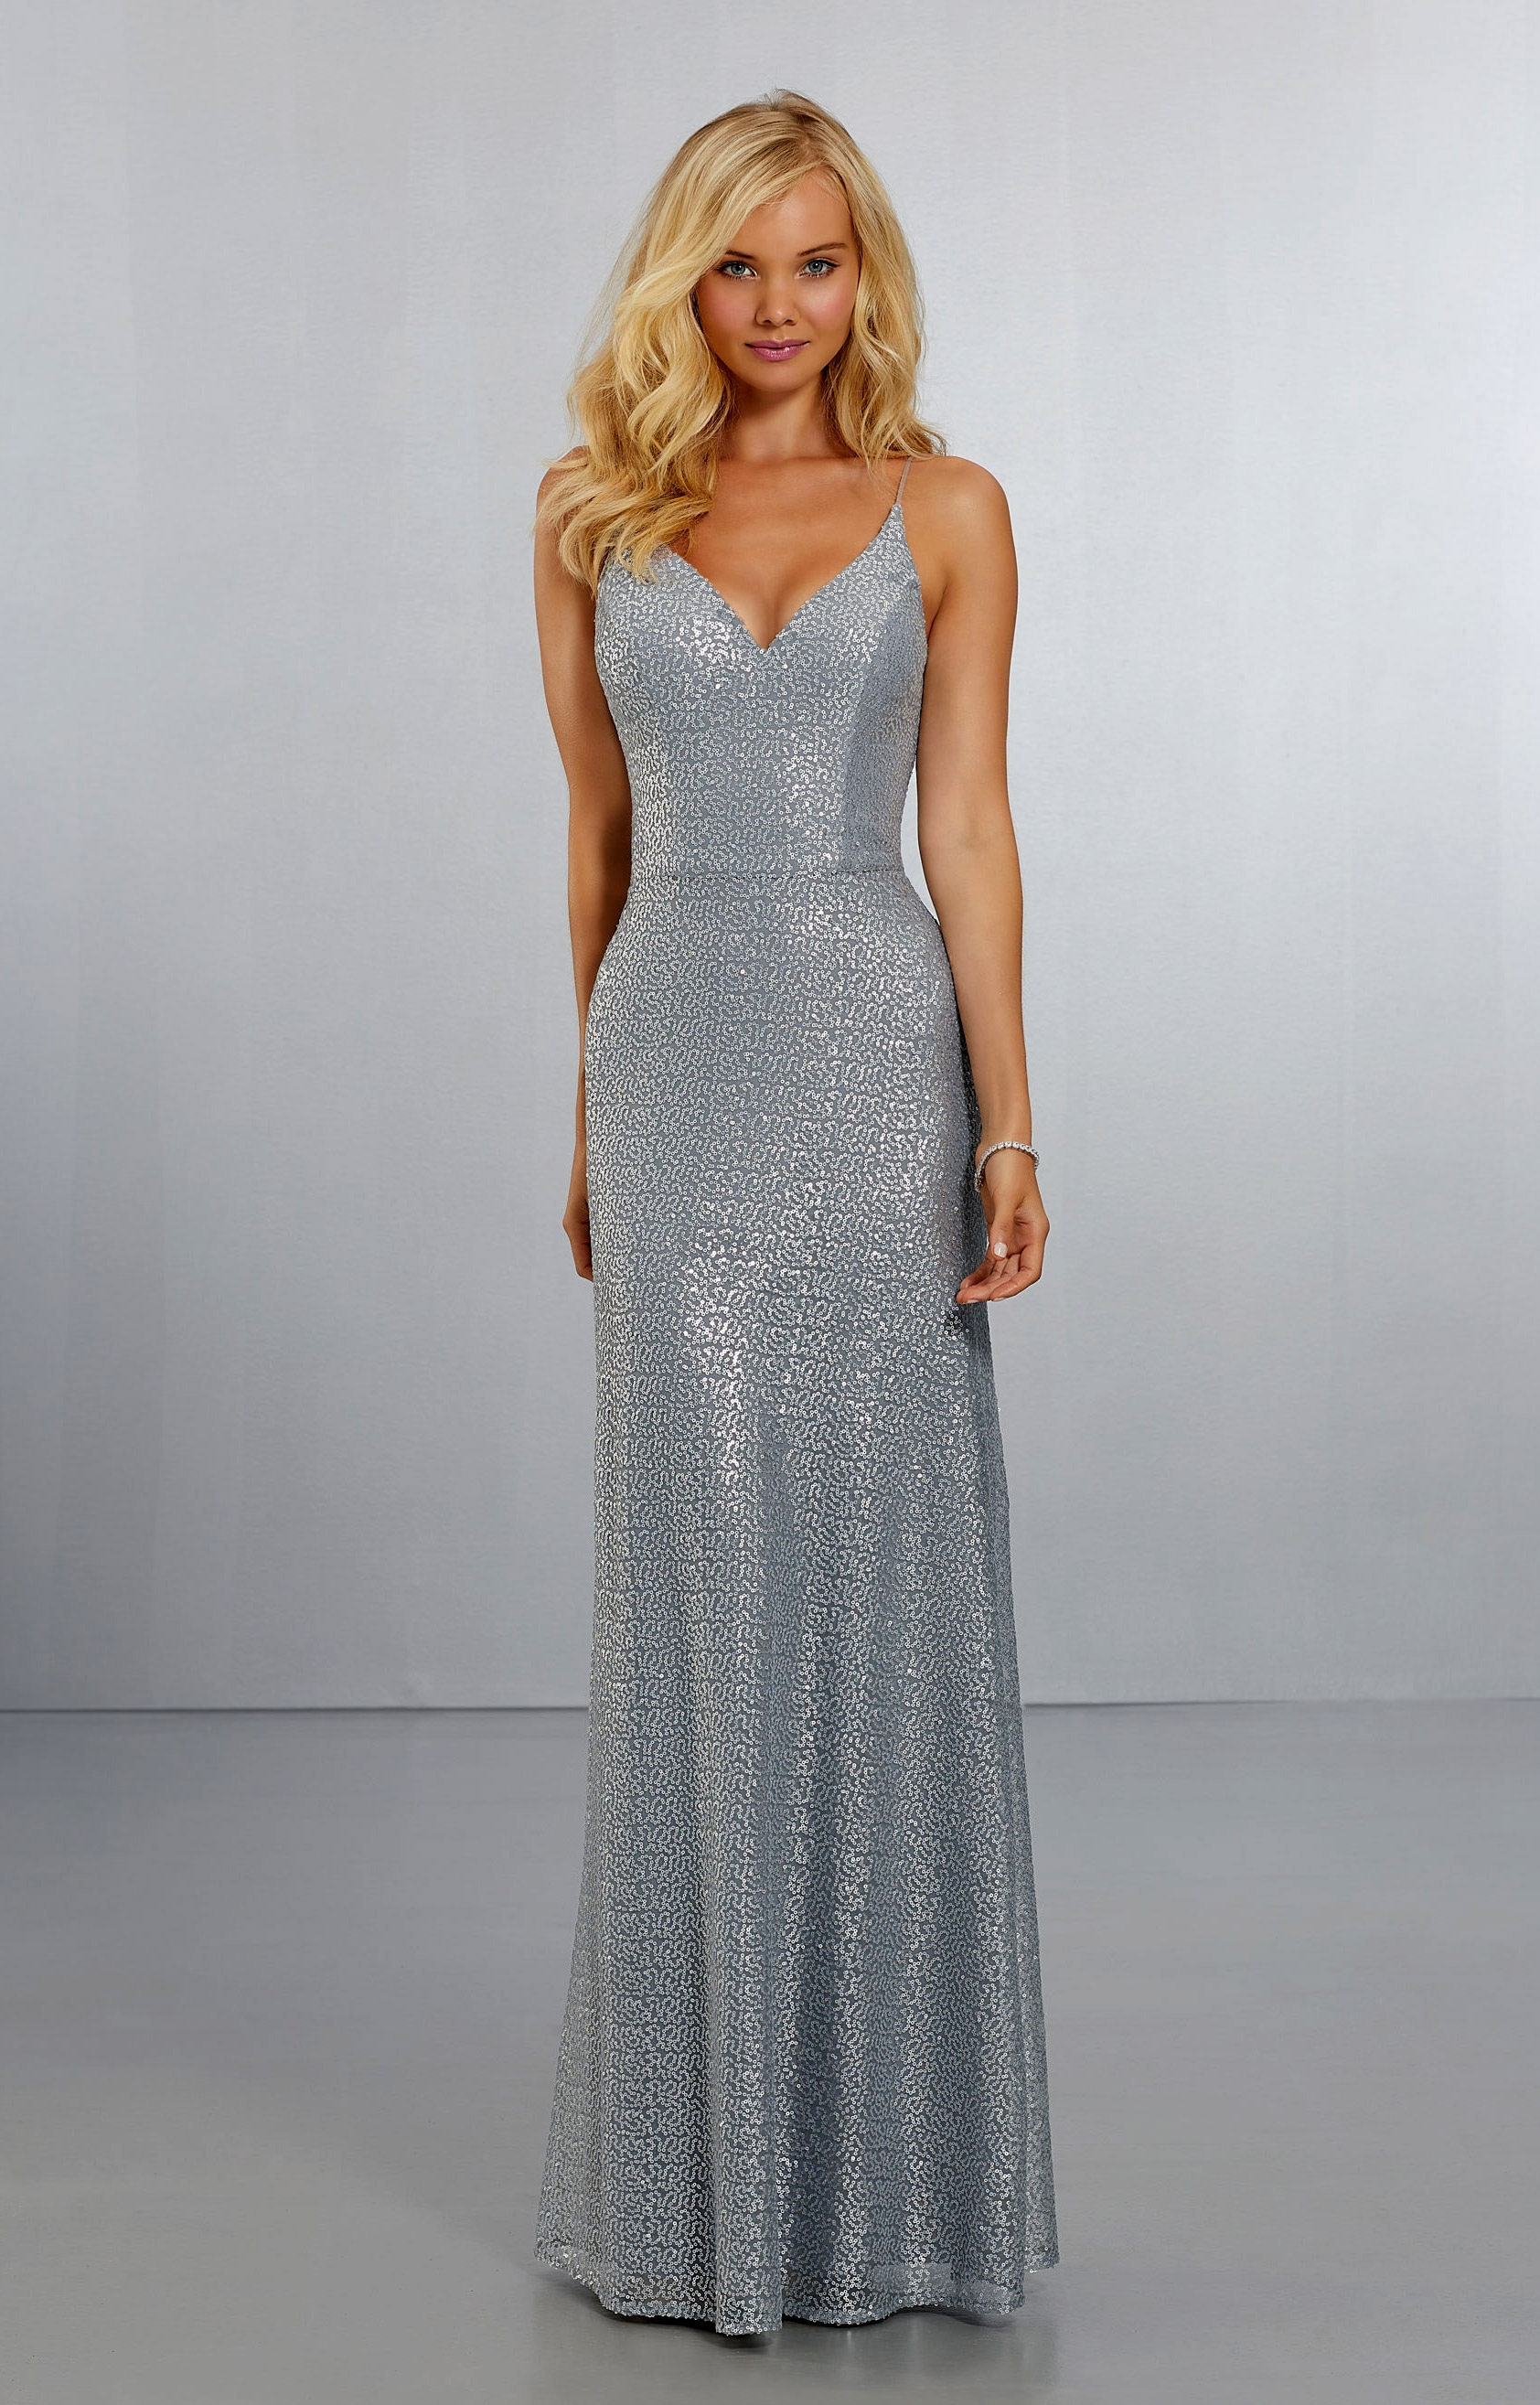 5940f9e974ad1 Morilee Bridesmaid 21555 - Long Fully Sequined V-Neck